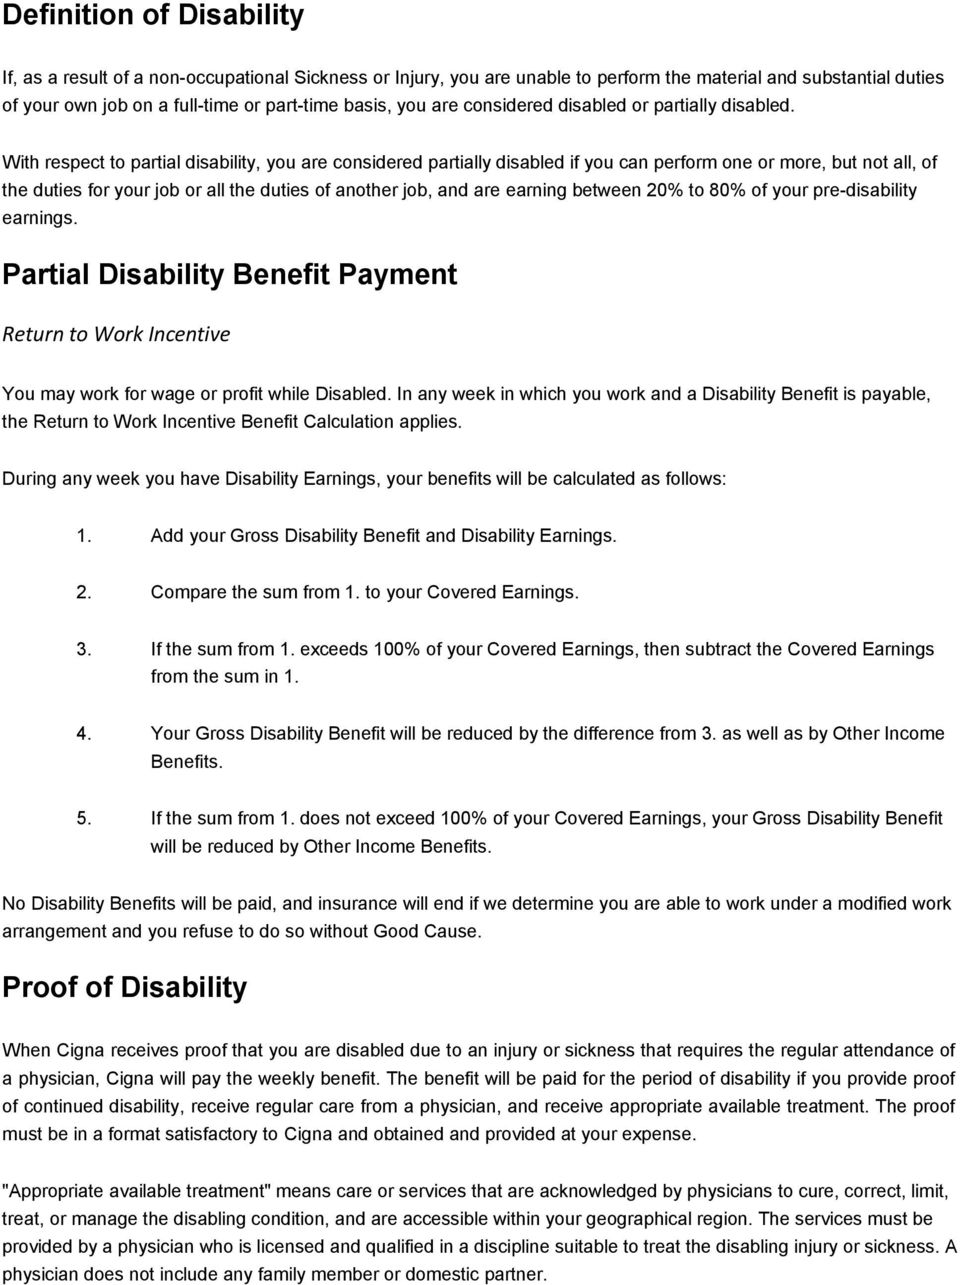 With respect to partial disability, you are considered partially disabled if you can perform one or more, but not all, of the duties for your job or all the duties of another job, and are earning